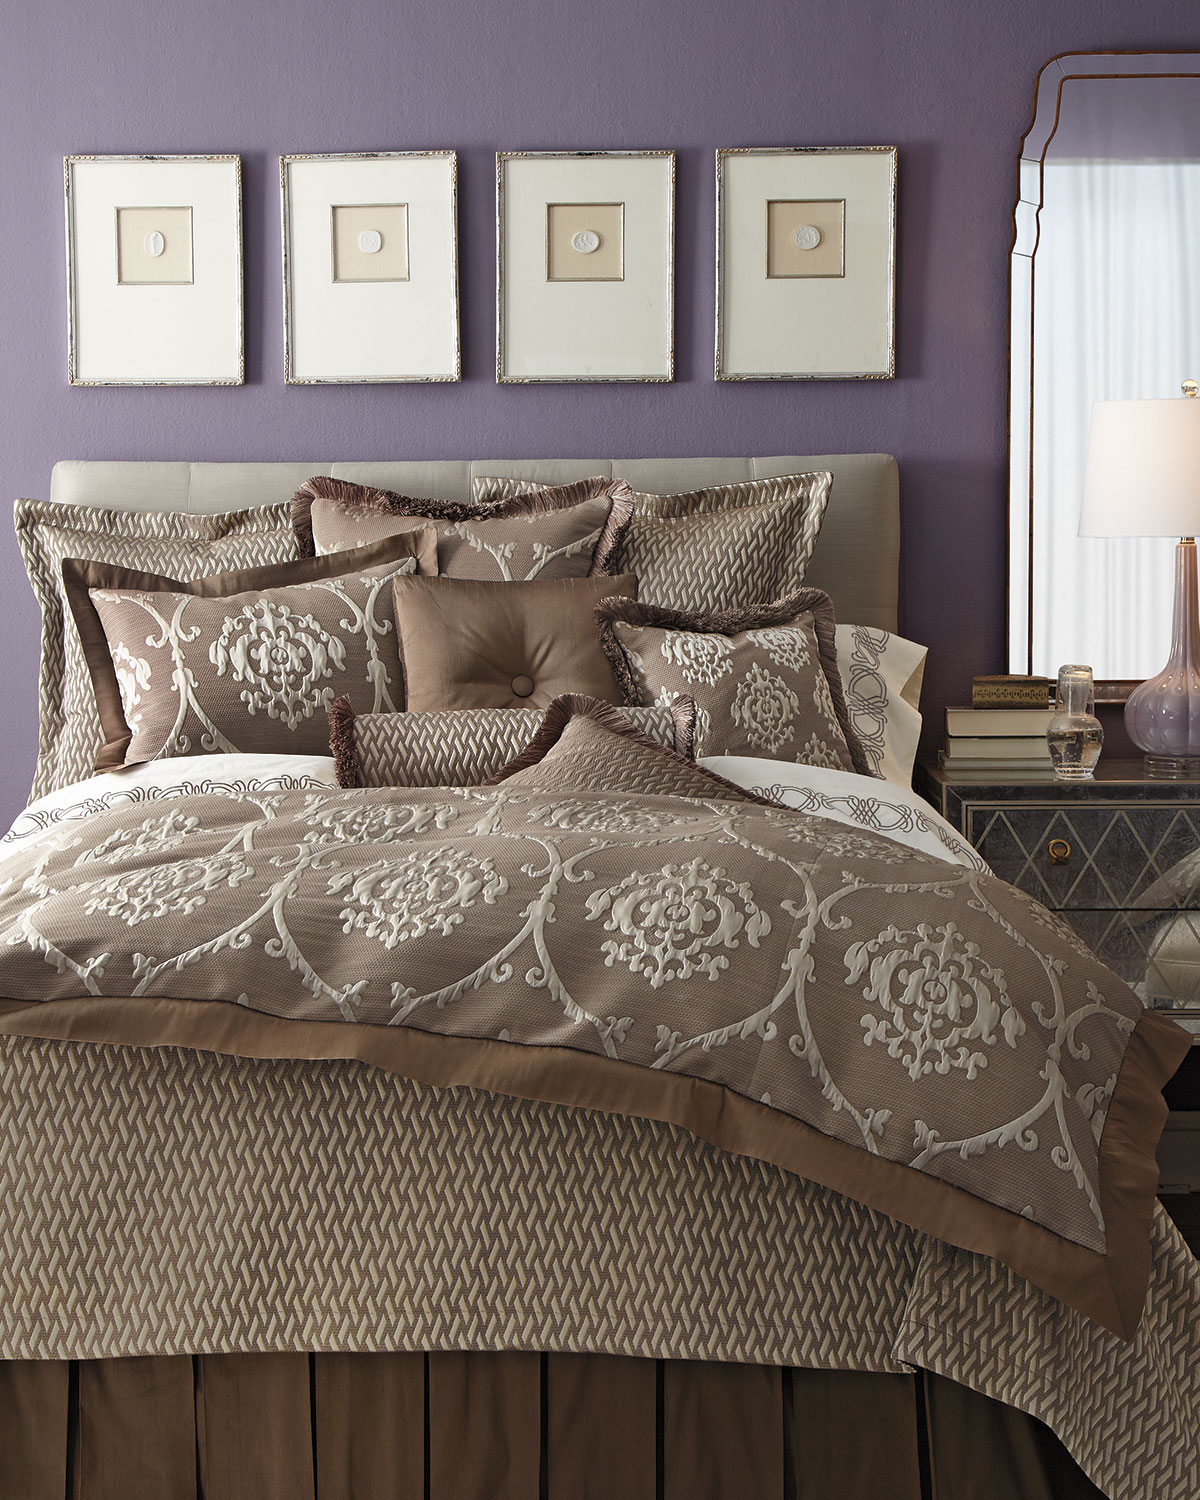 King Le Plaza Damask Duvet Cover